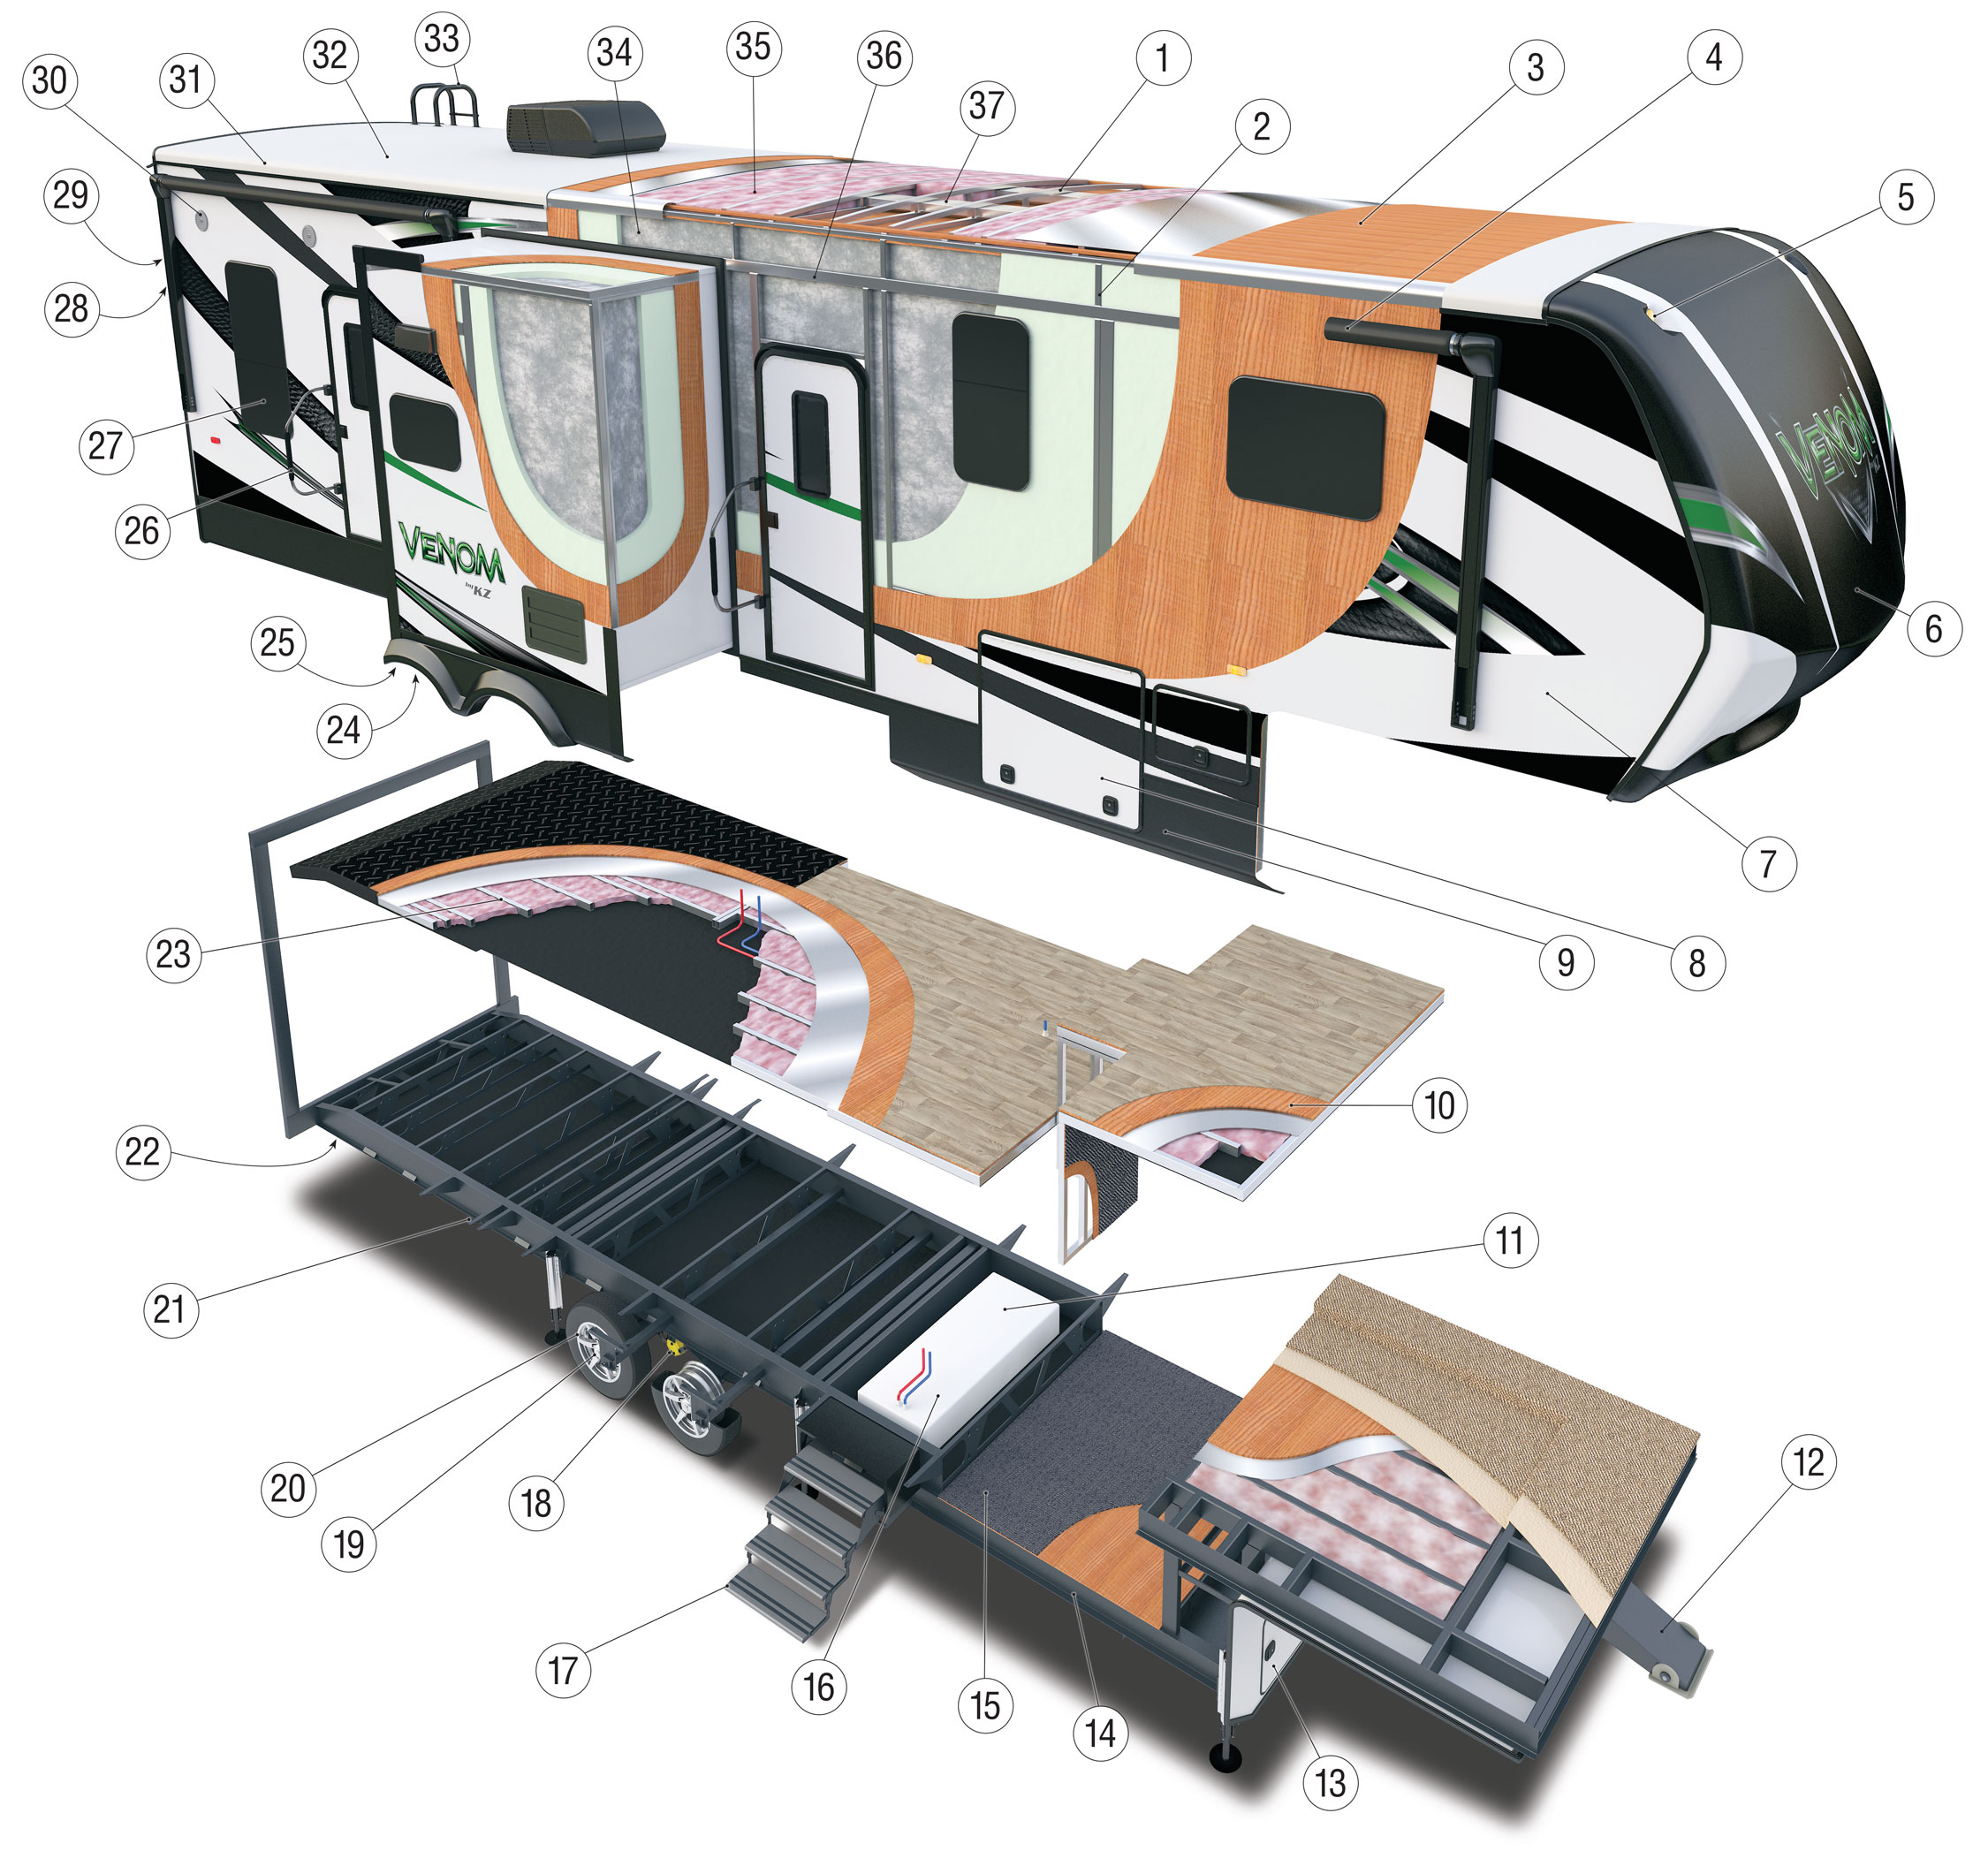 Venom Luxury Fifth Wheel Toy Hauler Features